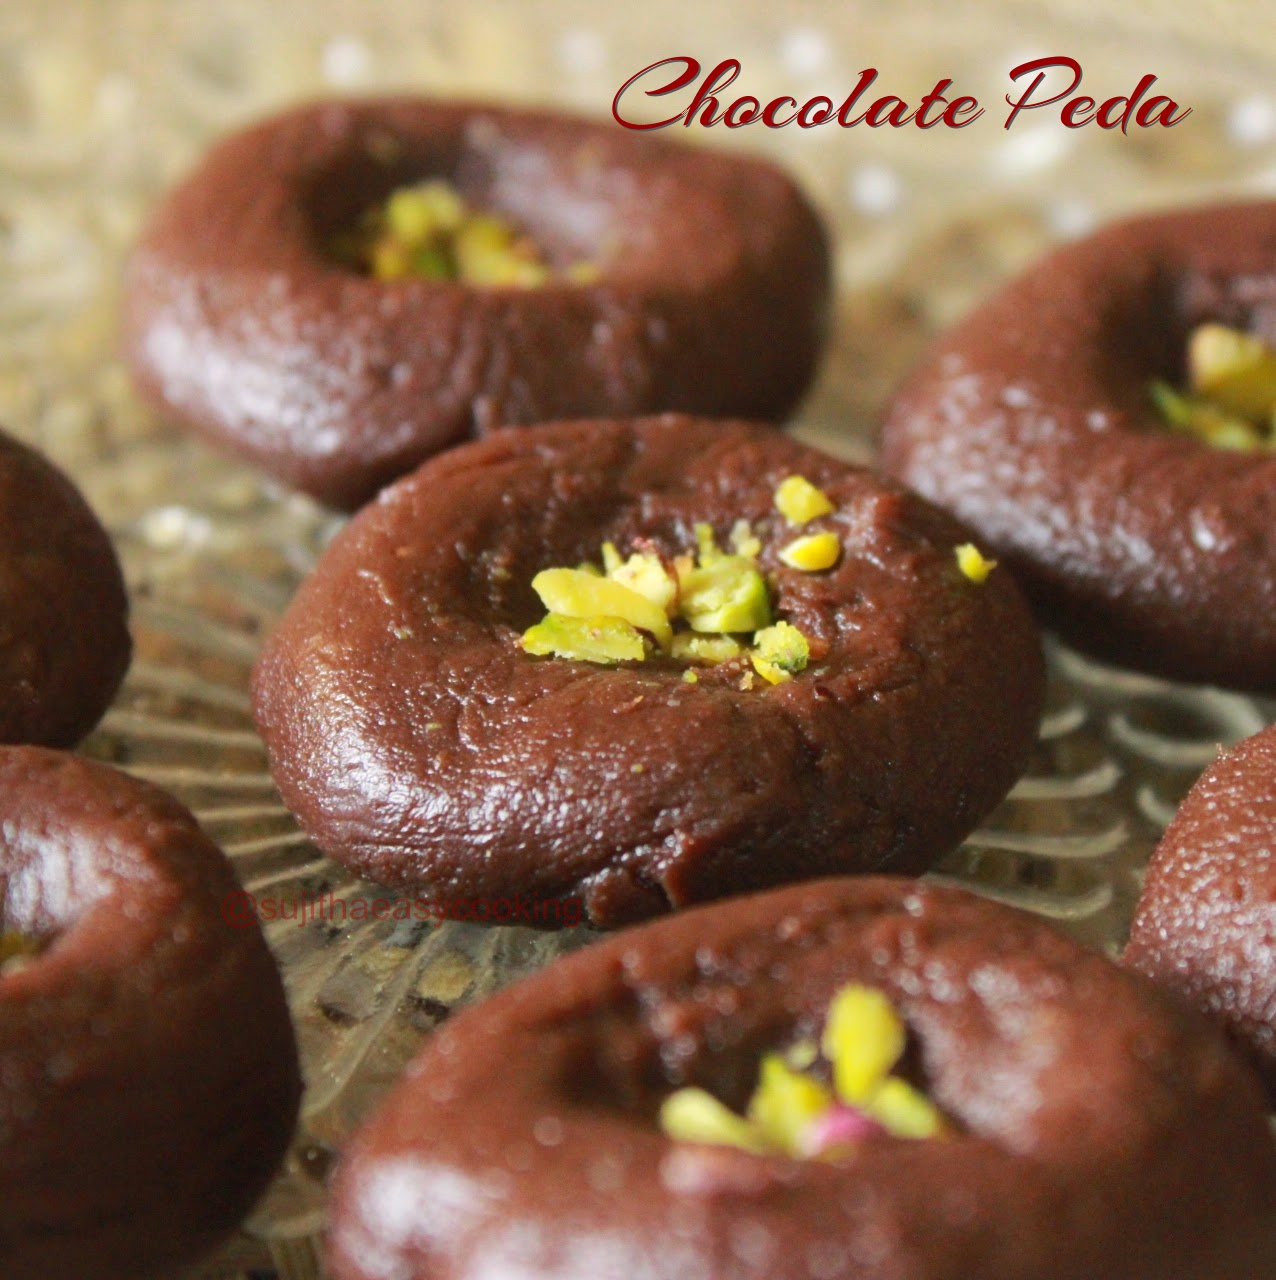 Chocolate Peda/Instant Chocolate peda